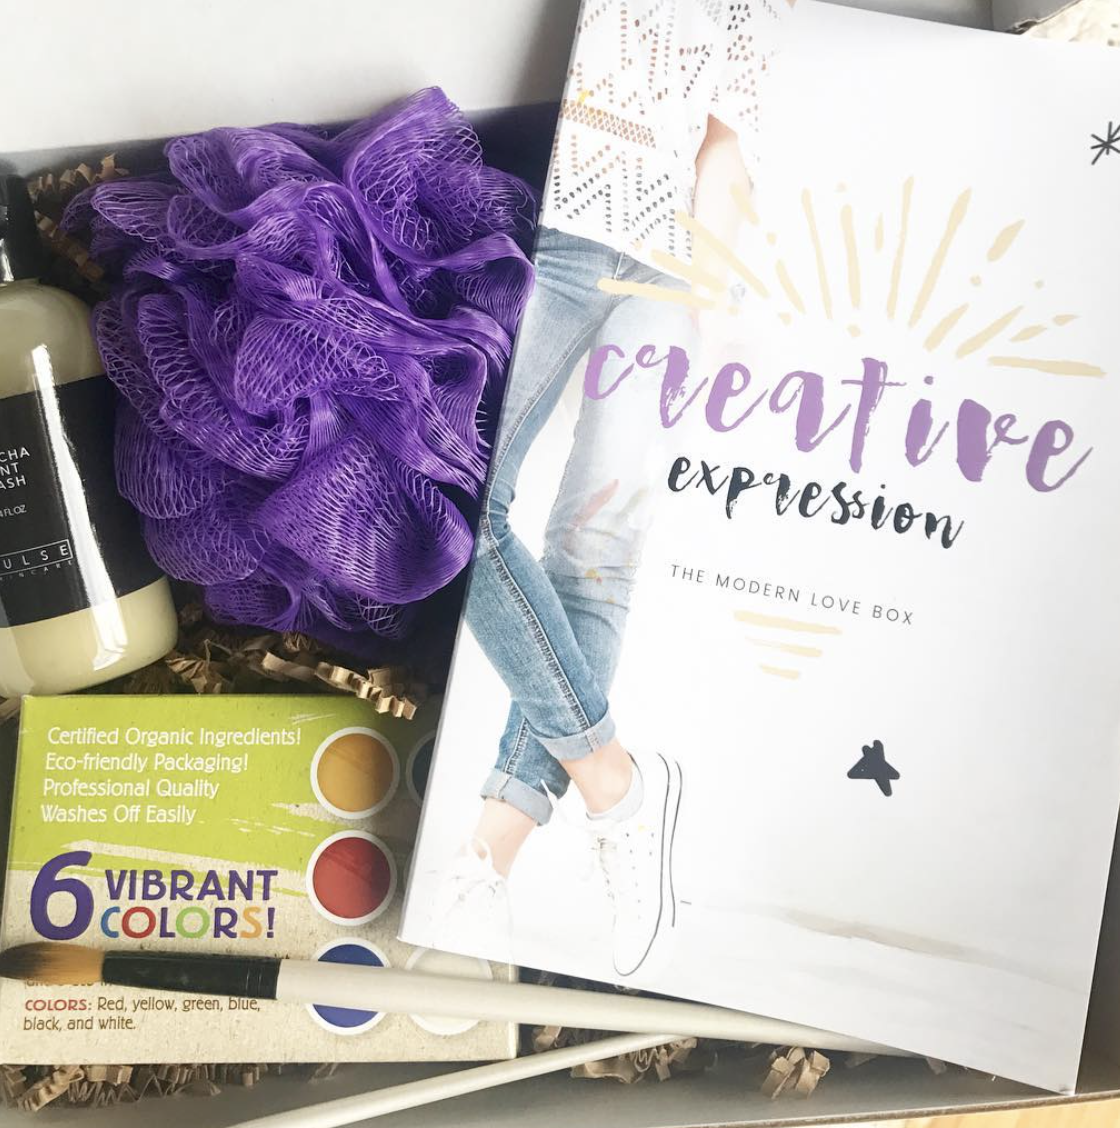 Creative Expression Box by The Modern Love Box